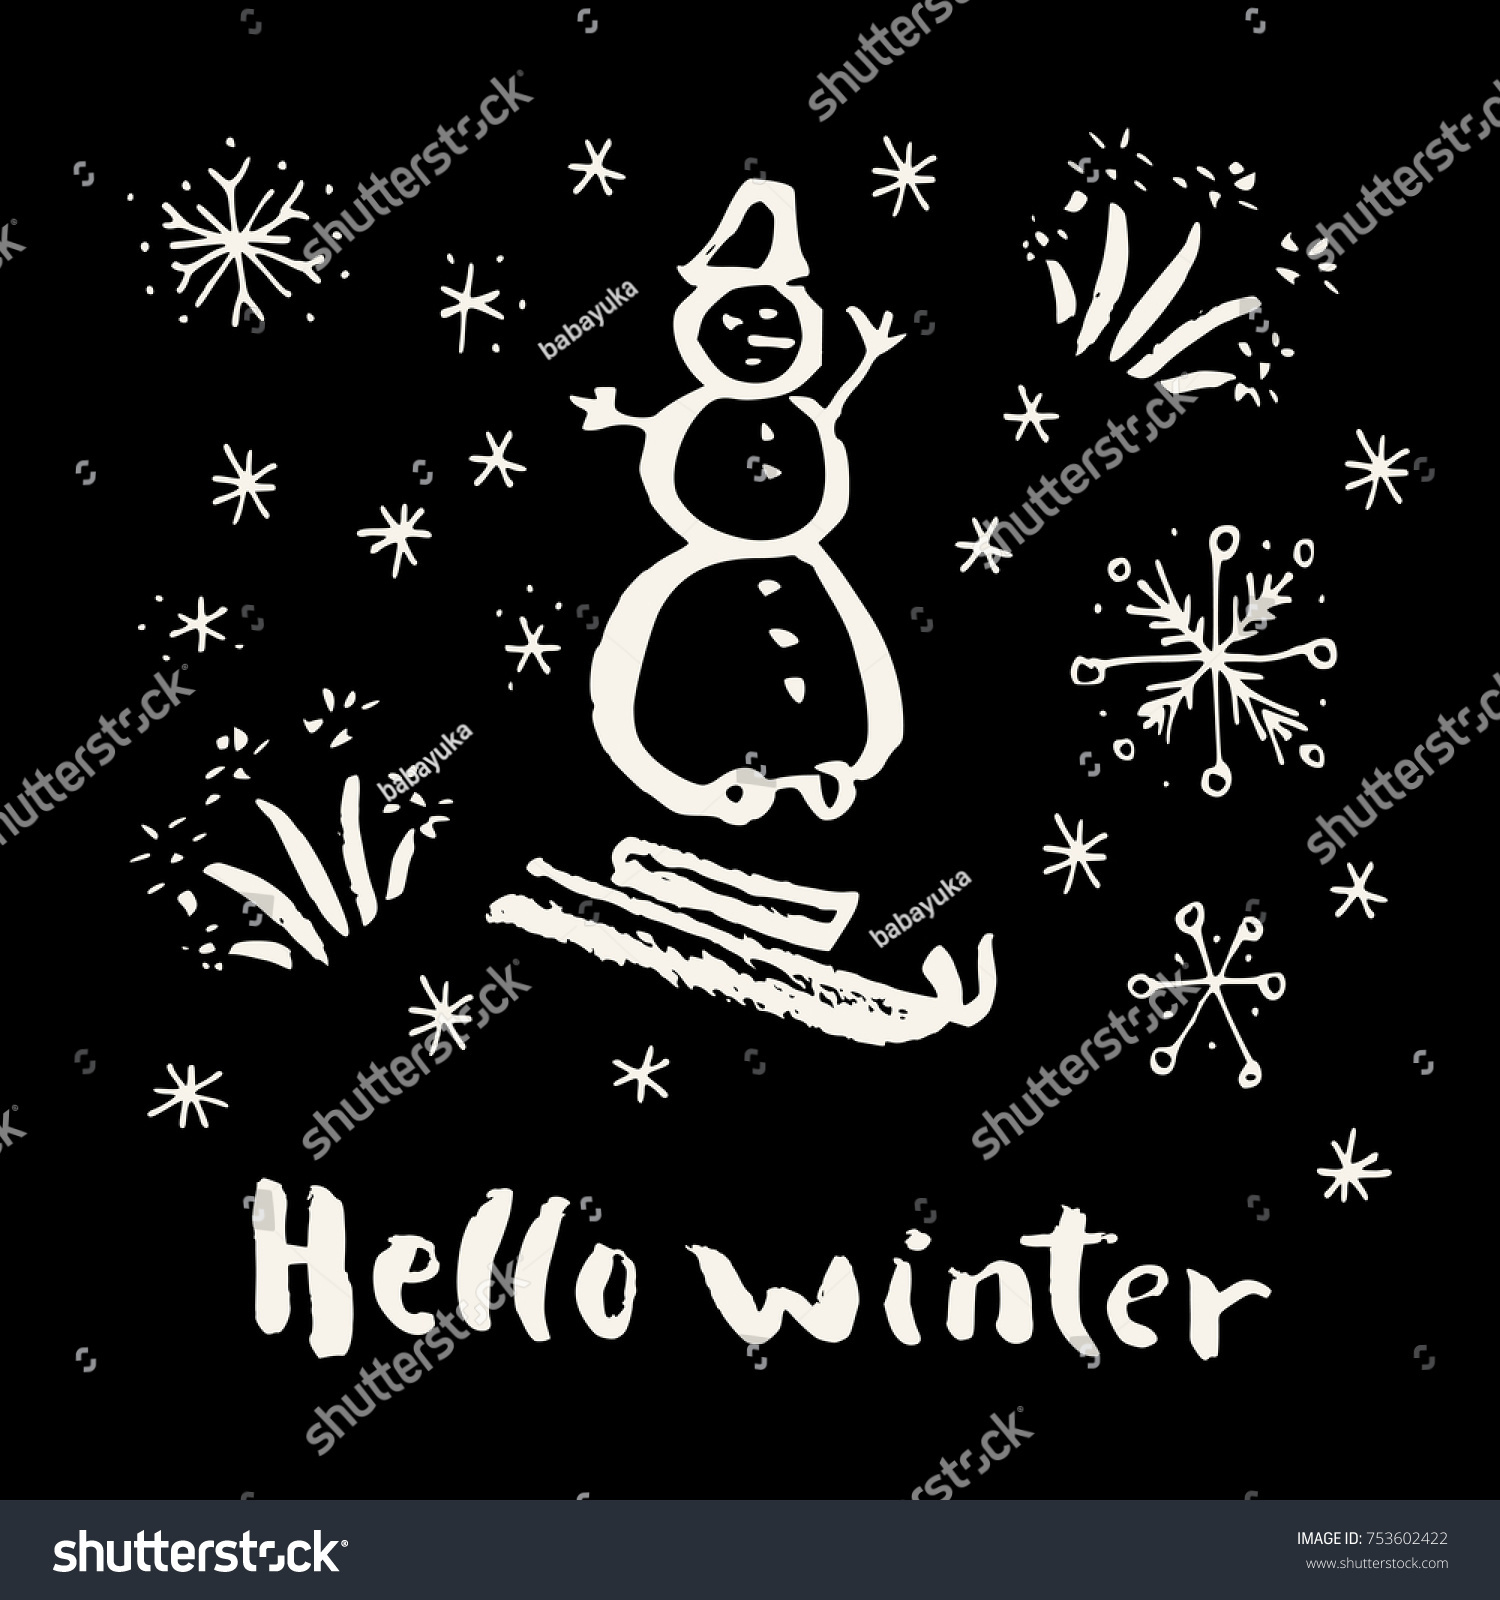 Charmant Hello Winter. Merry Christmas And Holiday Season Calligraphic Hand Drawn  Greeting Card In Black And